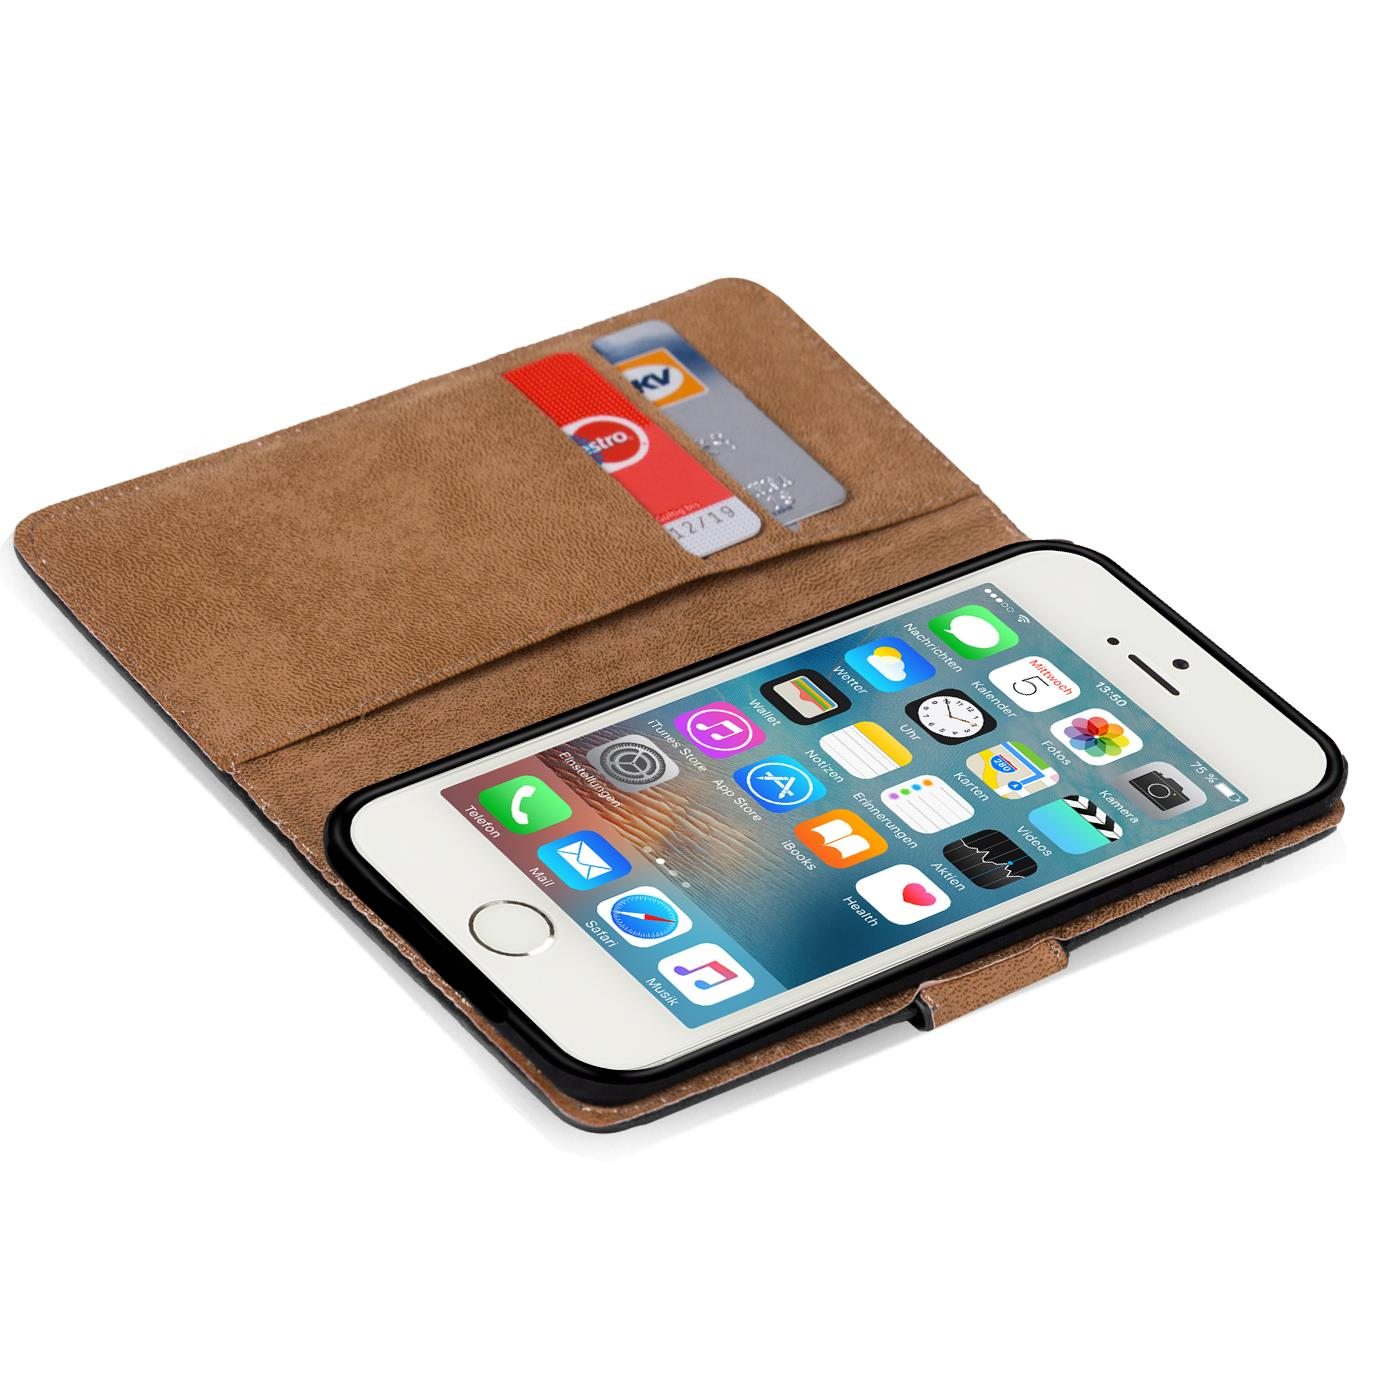 Case-Cover-Apple-iPhone-5-5S-SE-Magnetic-Flip-PU-Leather-Wallet-Holder-Shell-Bag thumbnail 4